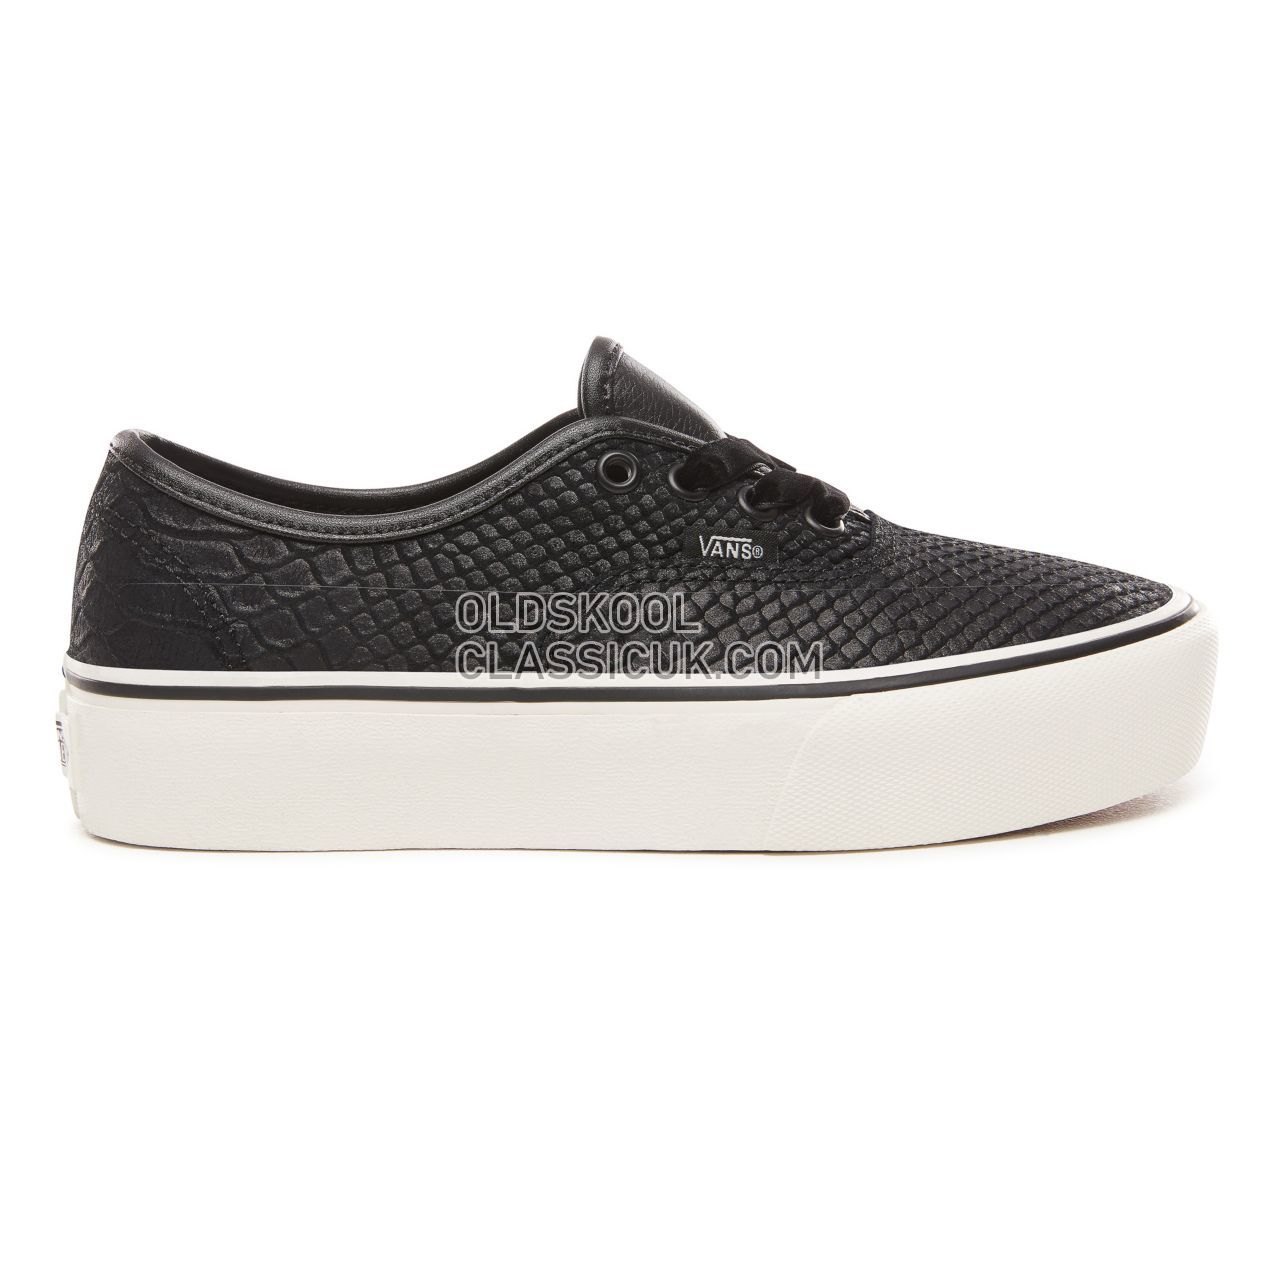 f13679b5874 Vans Leather Authentic Platform 2.0 Sneakers Womens (Leather) Snake/Black  VN0A3AV8UQF Shoes - £60